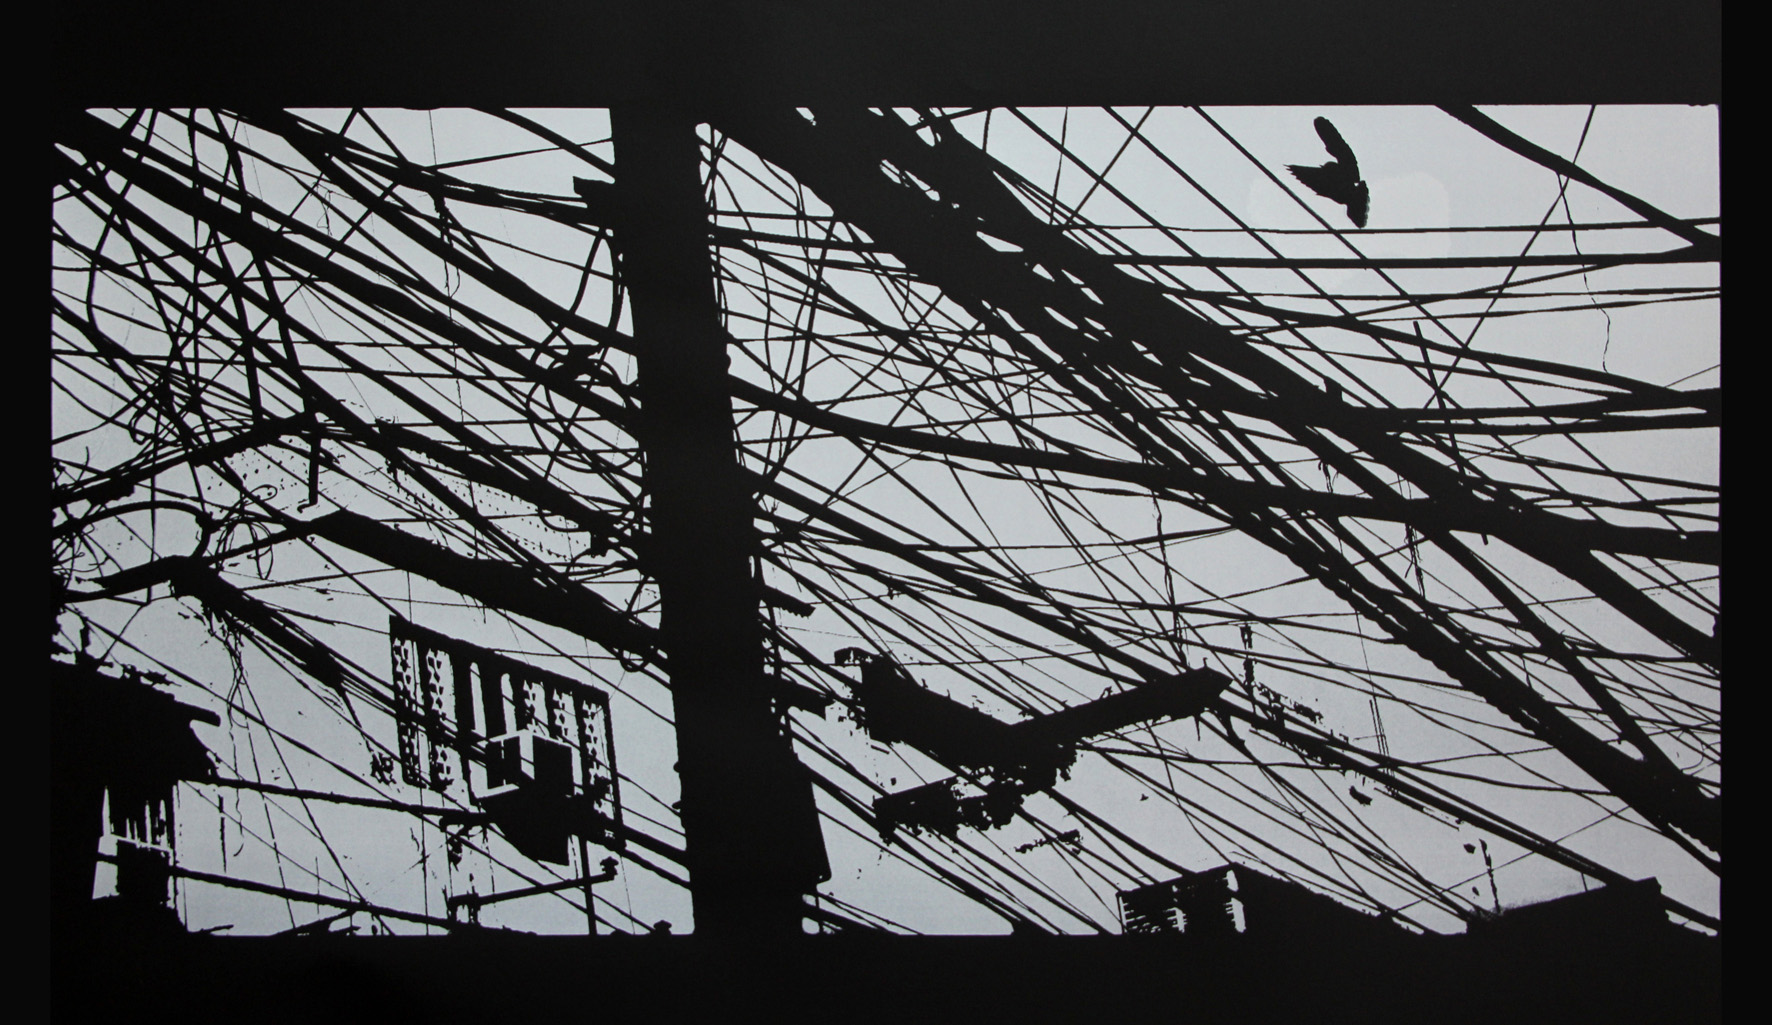 Connection I -   Delhi - 2011 - Screen print on paper - 120 x 80 cm - Edition of 05